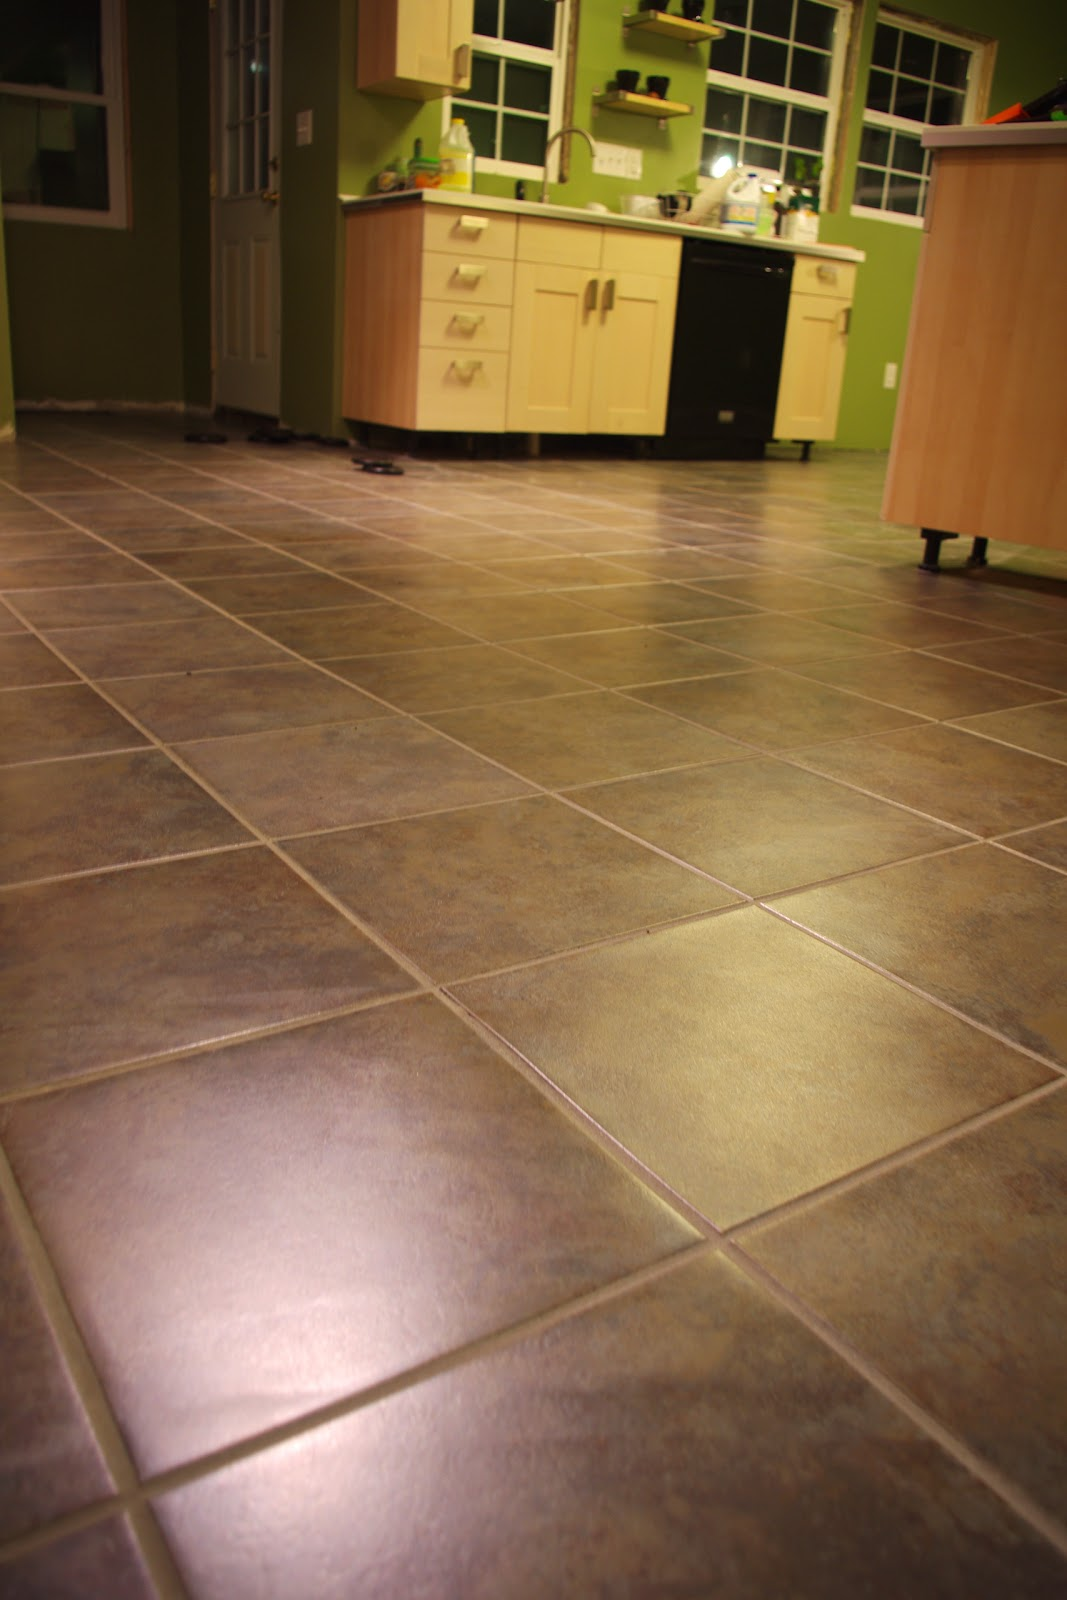 Dan jess diy luxury vinyl tile diy luxury vinyl tile our kitchen floor dailygadgetfo Choice Image